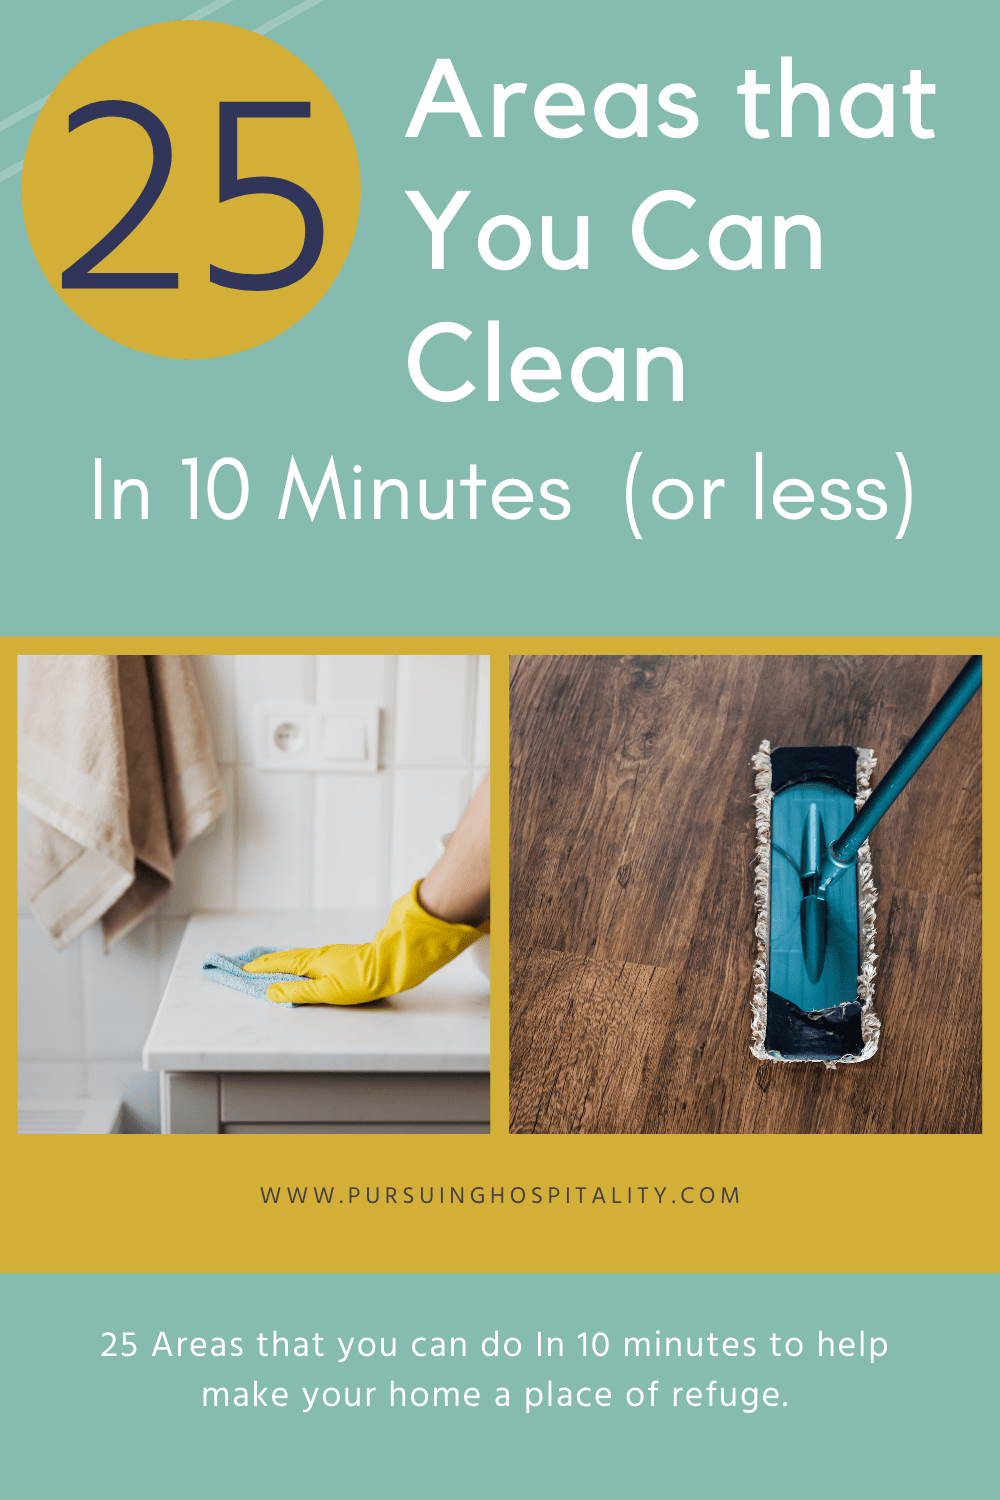 25 areas you can clean in 10 minutes or less